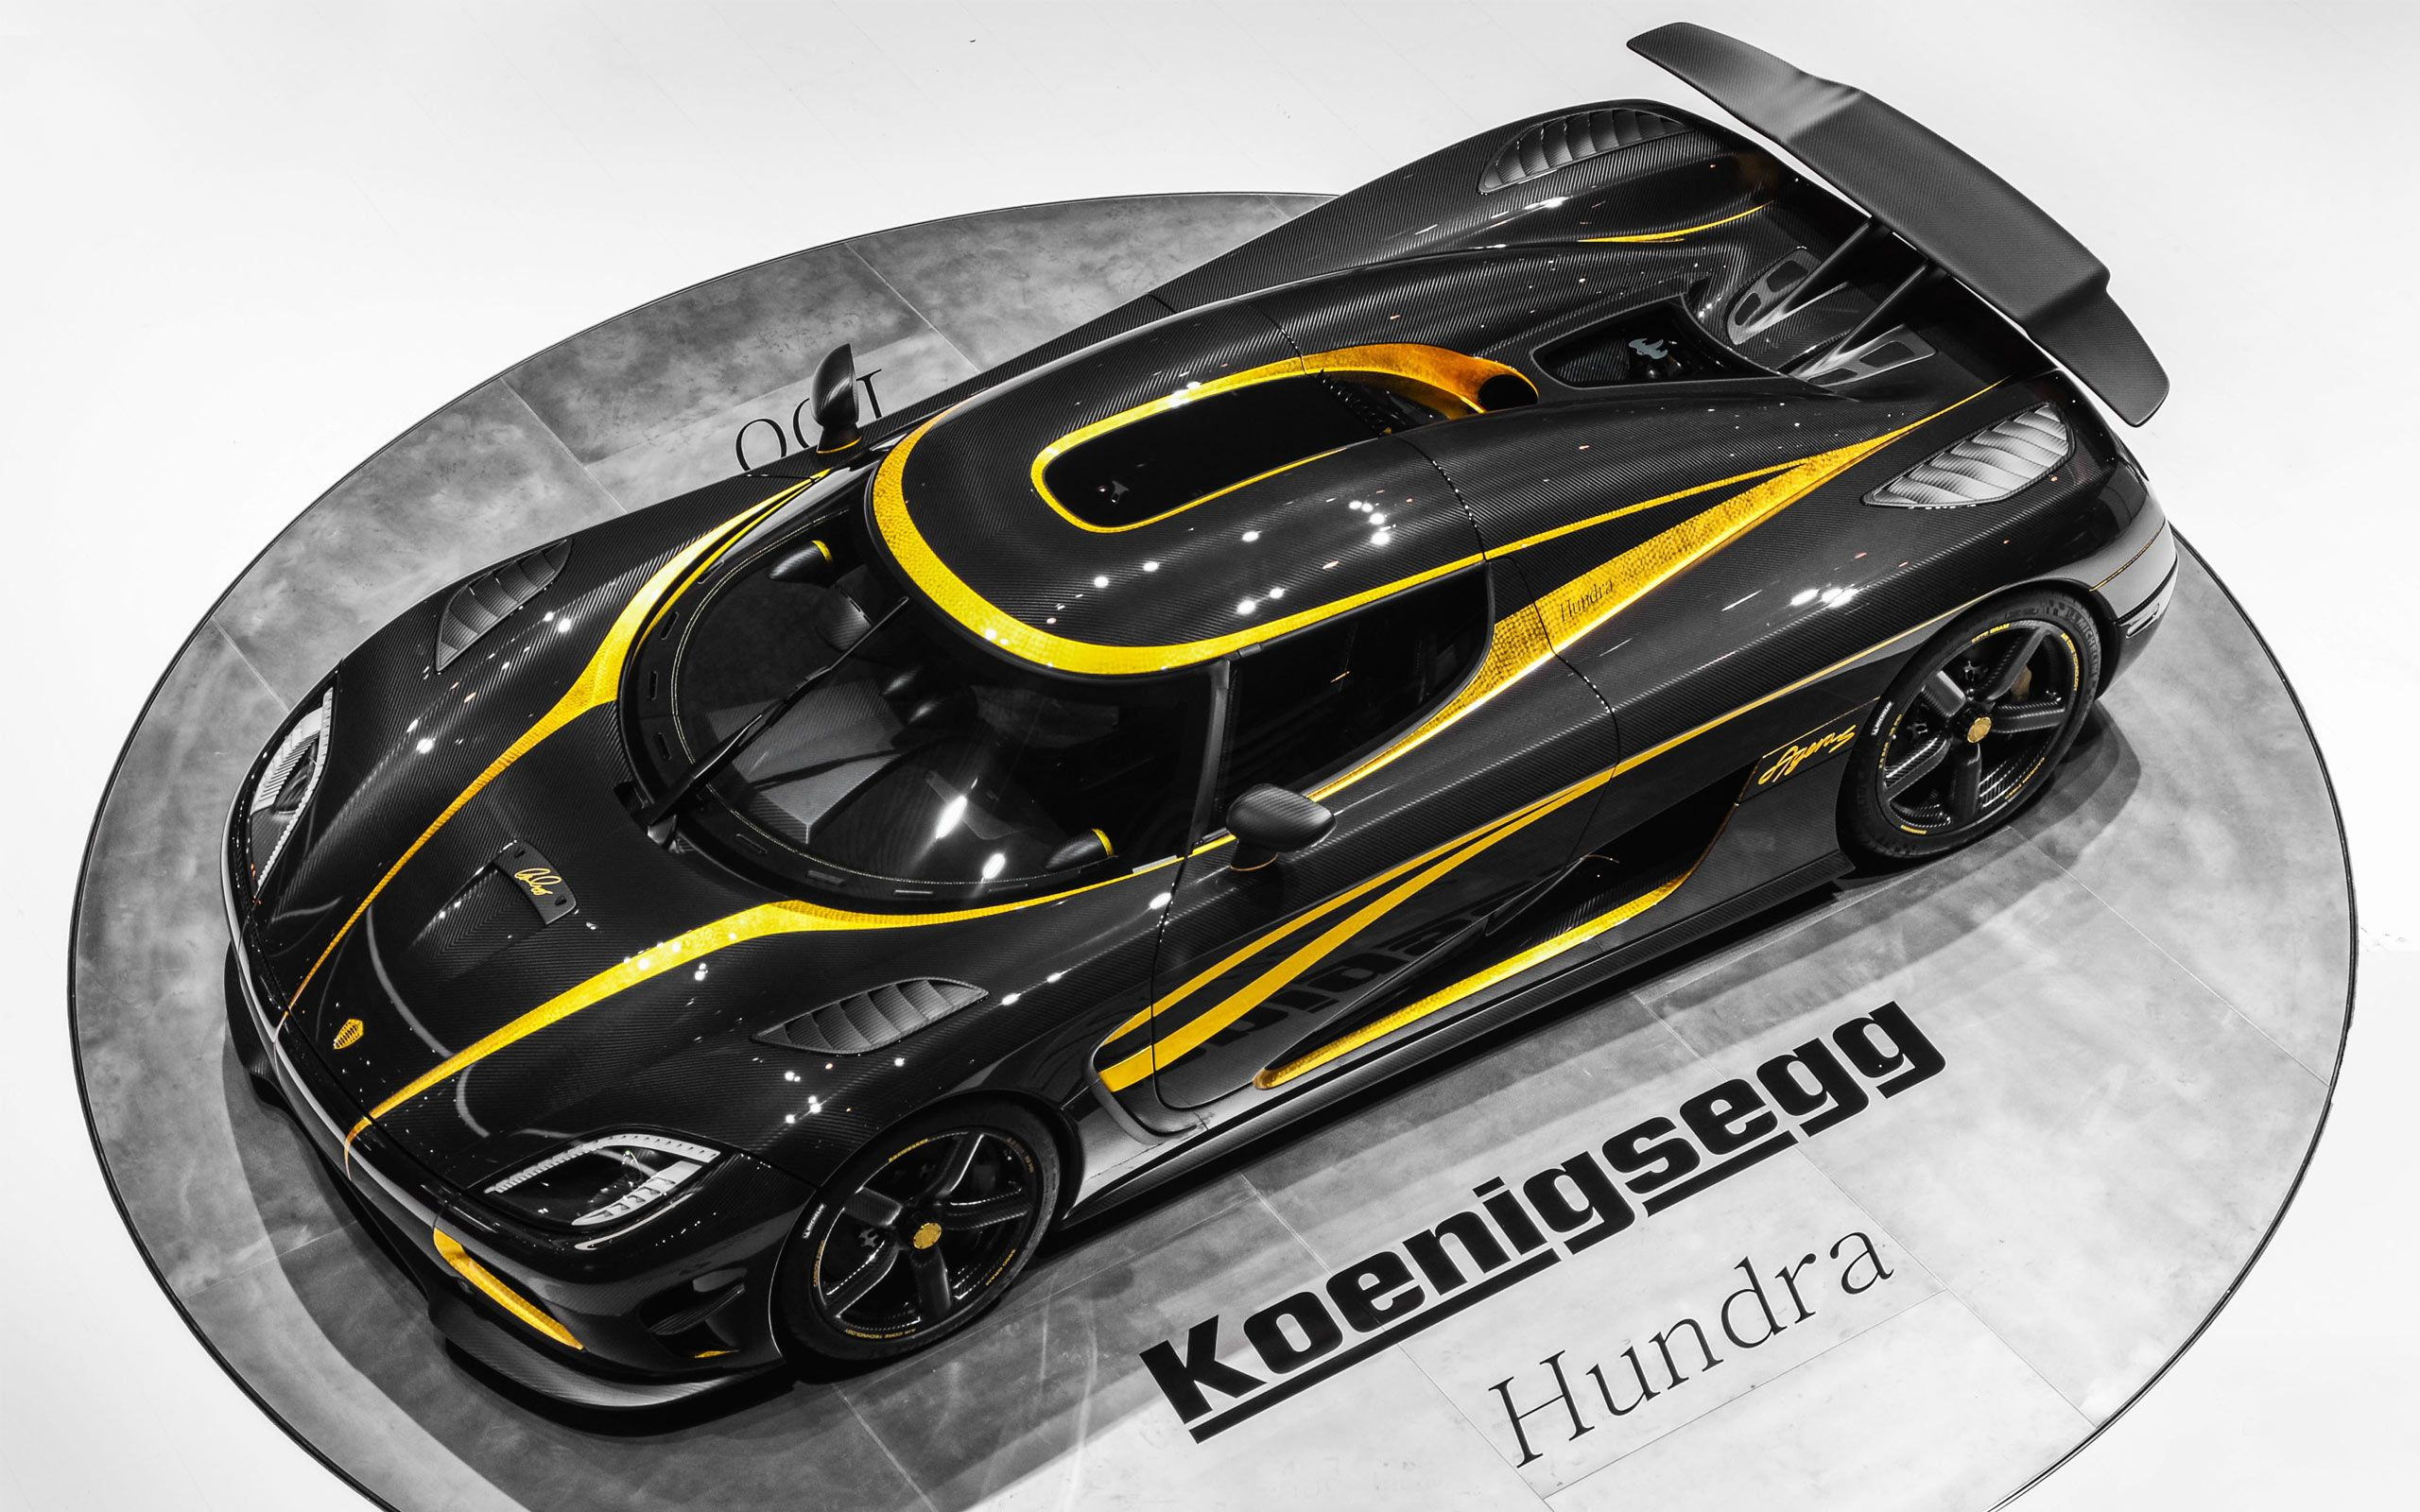 bugatti veyron vs koenigsegg agera s hundra drag race. Black Bedroom Furniture Sets. Home Design Ideas